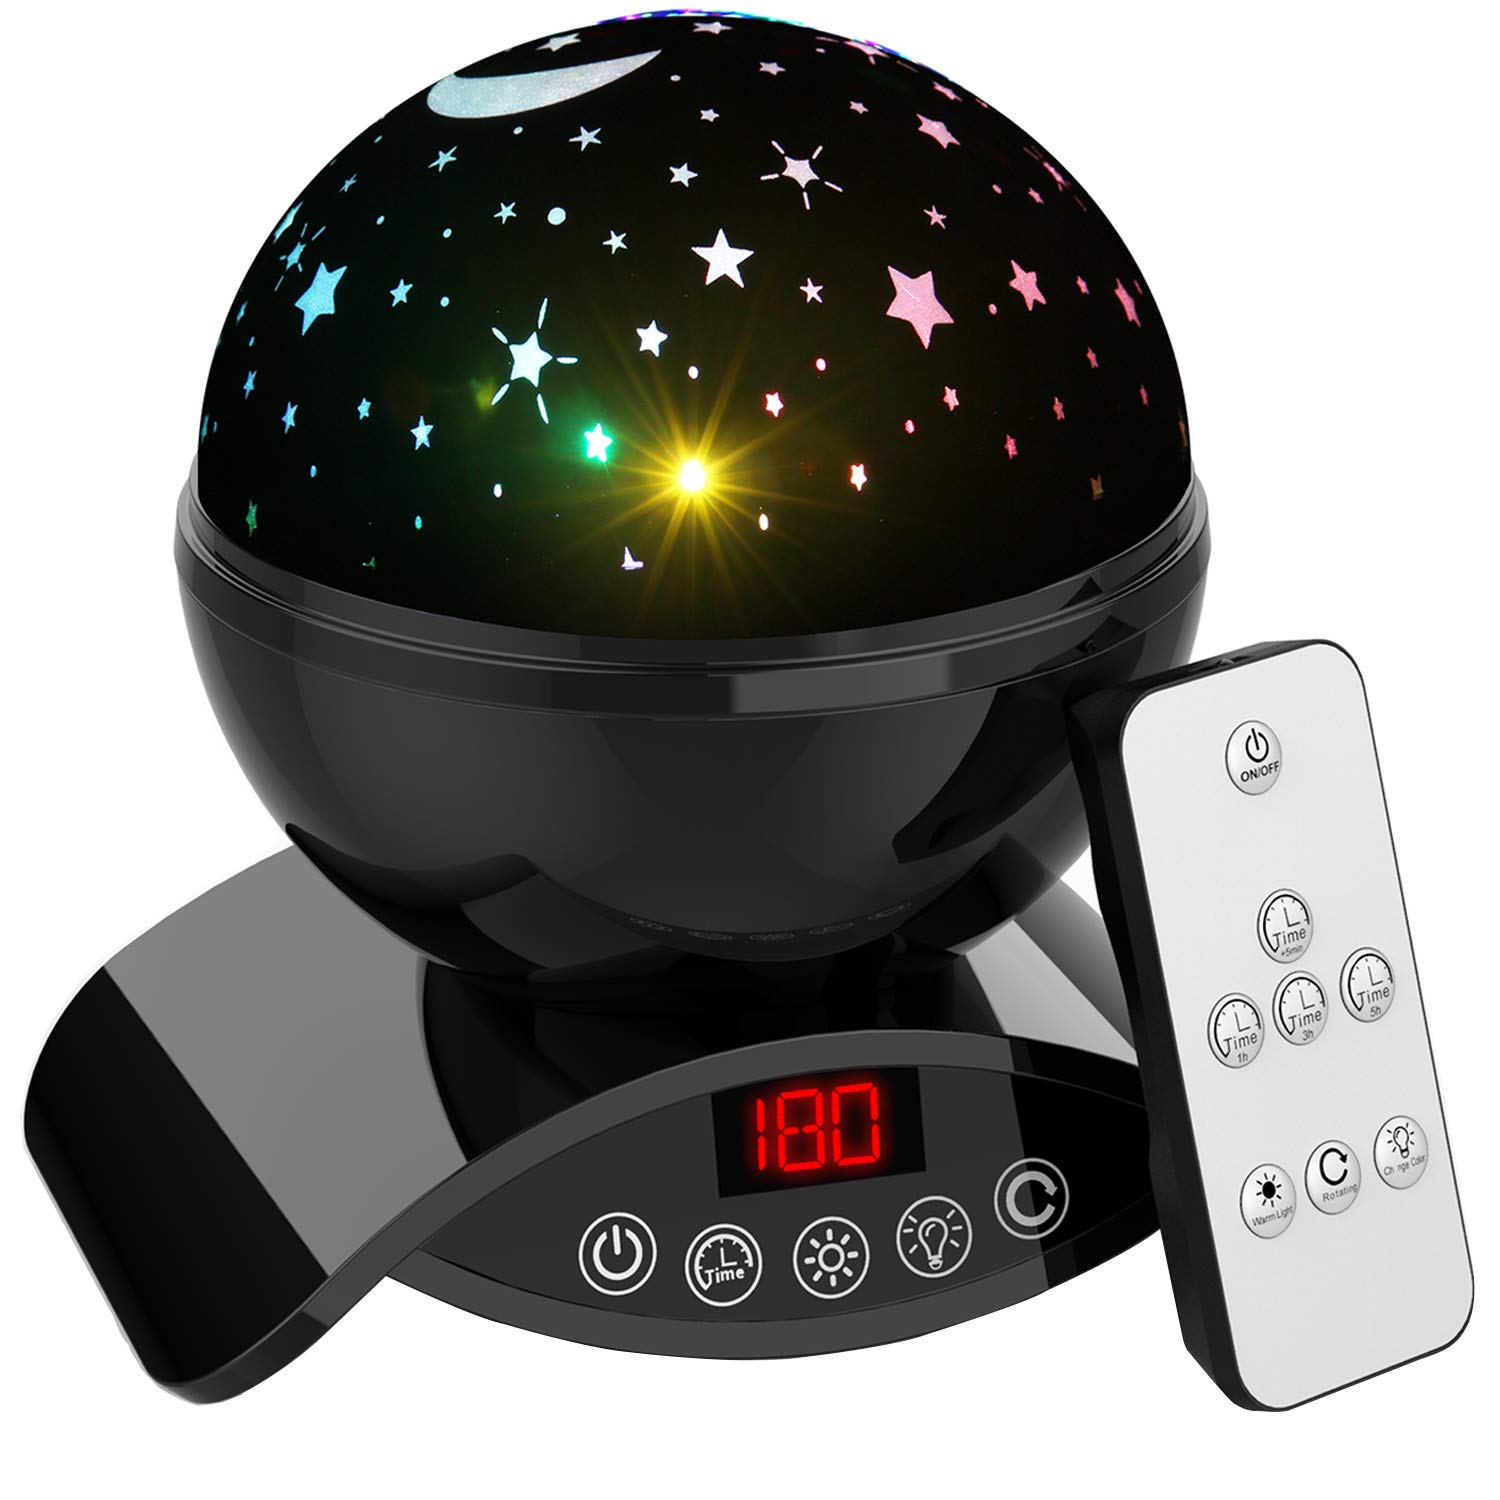 Aisuo Lighting Lamp, Rotating Star Projection with Auto Shut Off Timer, 7 Color Options, Rechargeable Lithium Battery & Dimmable Function, Ideal Gift for Kids, Children, Friends. (Black)